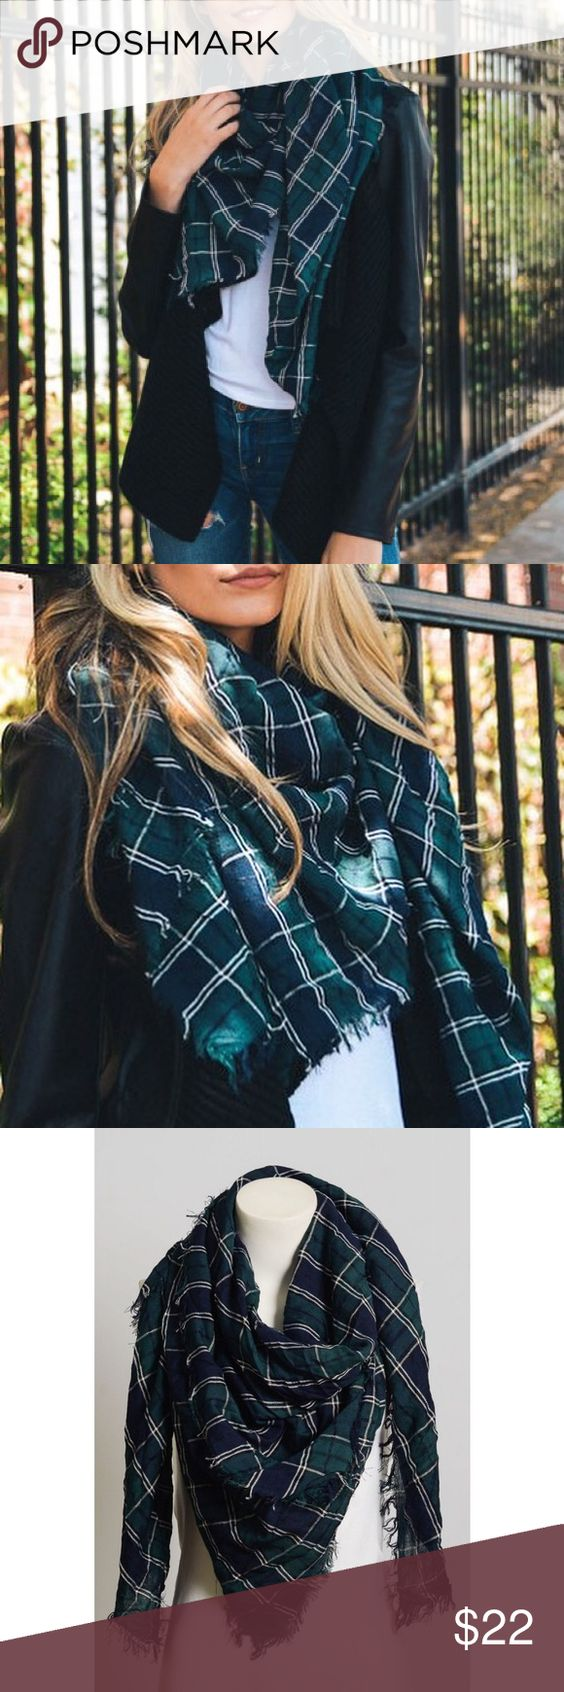 """🆕 Crinkled Plaid Scarf Perfect addition to any outfit. Crinkled tartan plaid frayed edge scarf. Made of viscose material. Measurements 57"""" X 57"""" Bchic Accessories Scarves & Wraps"""